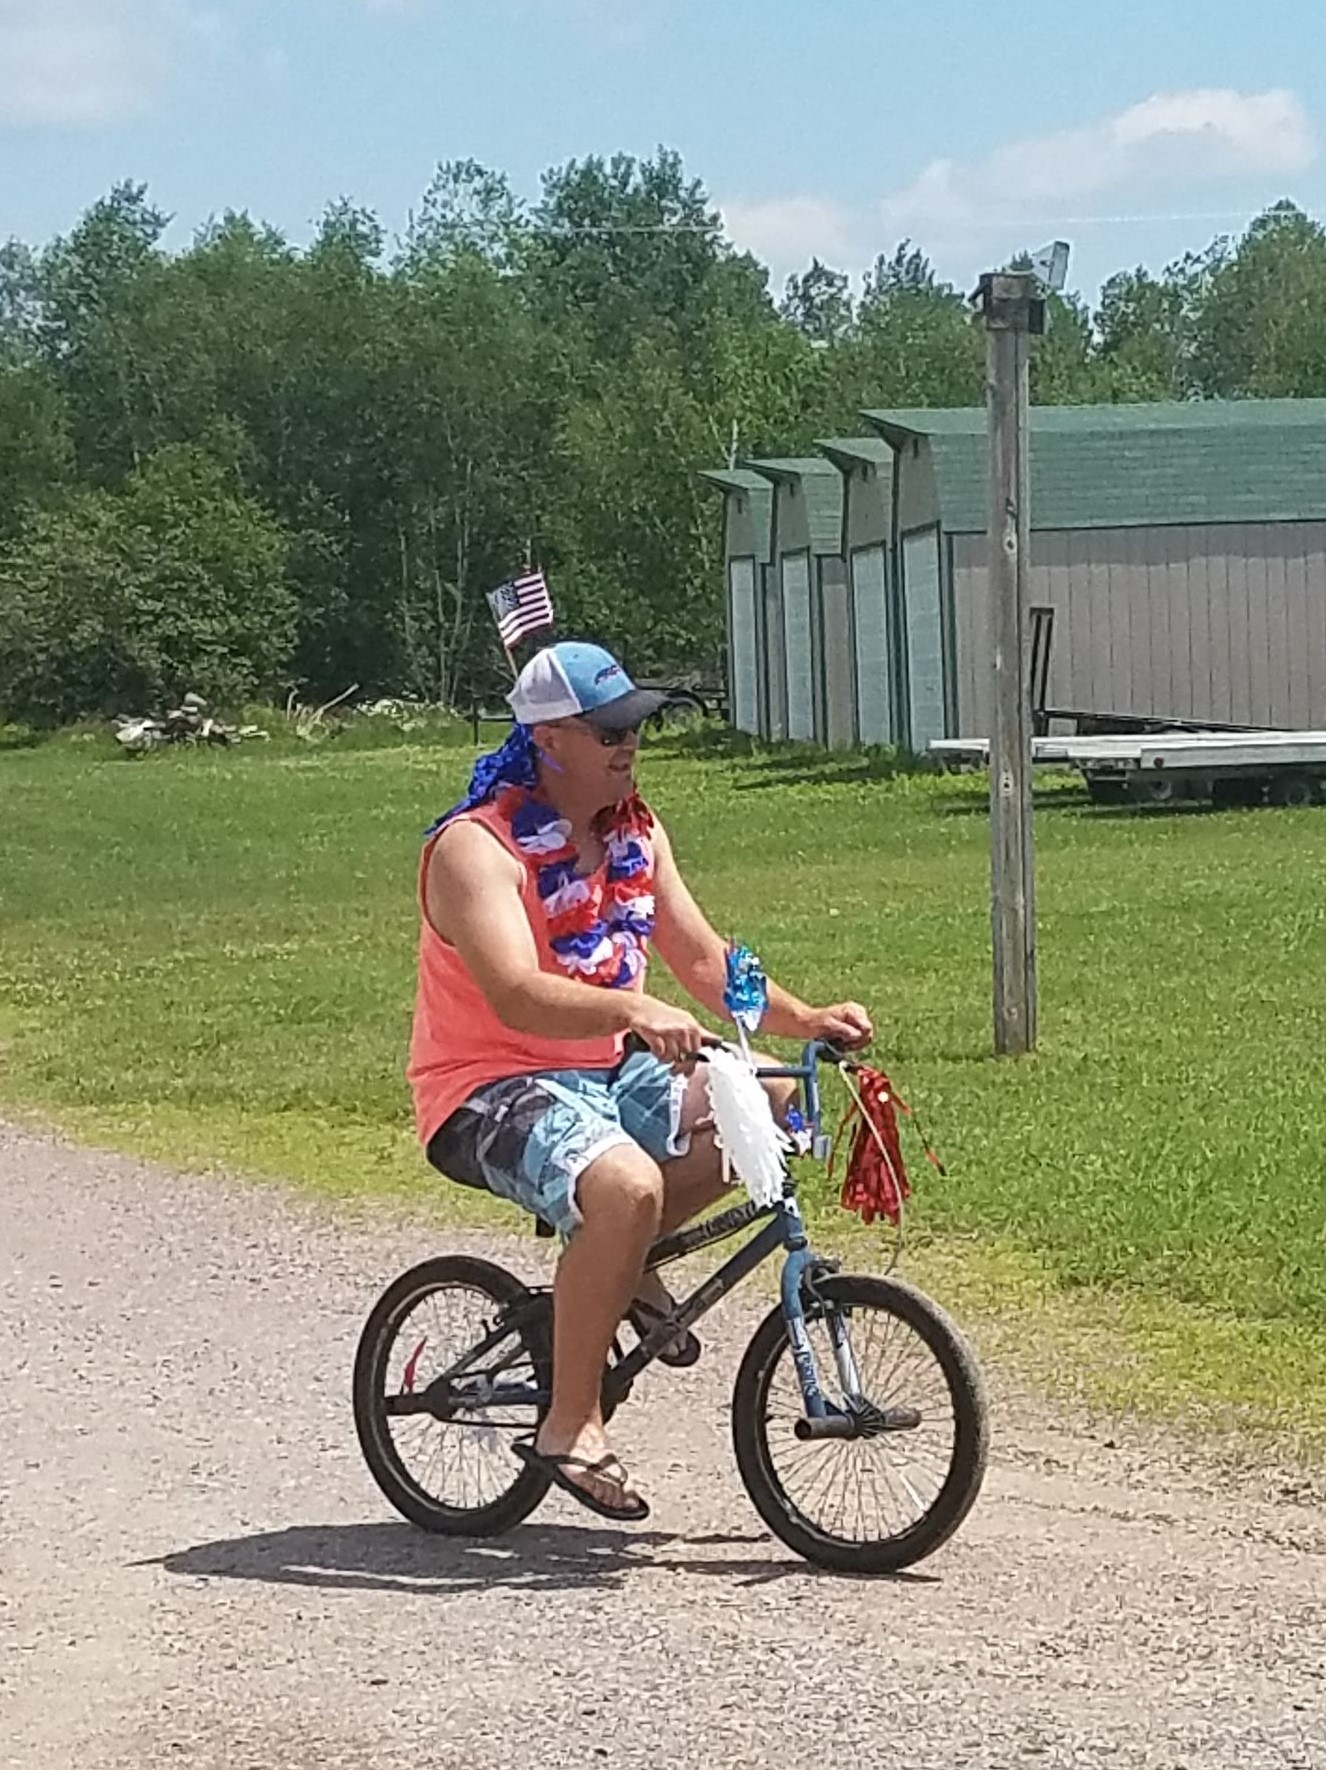 Even adults like to borrow our bikes and take them for a spin around the campground.